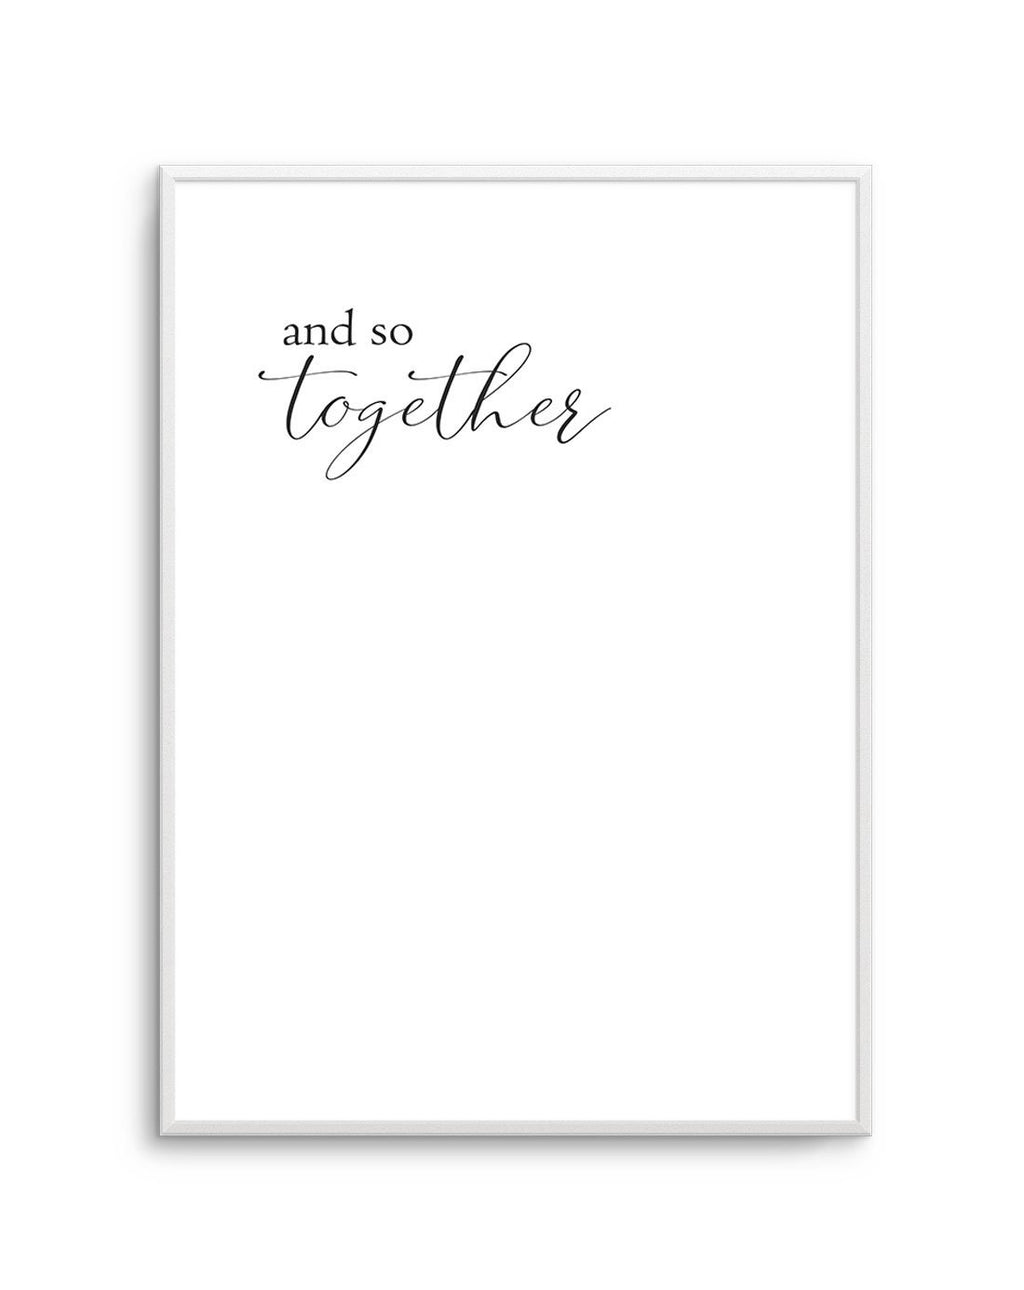 And Together They... - Olive et Oriel